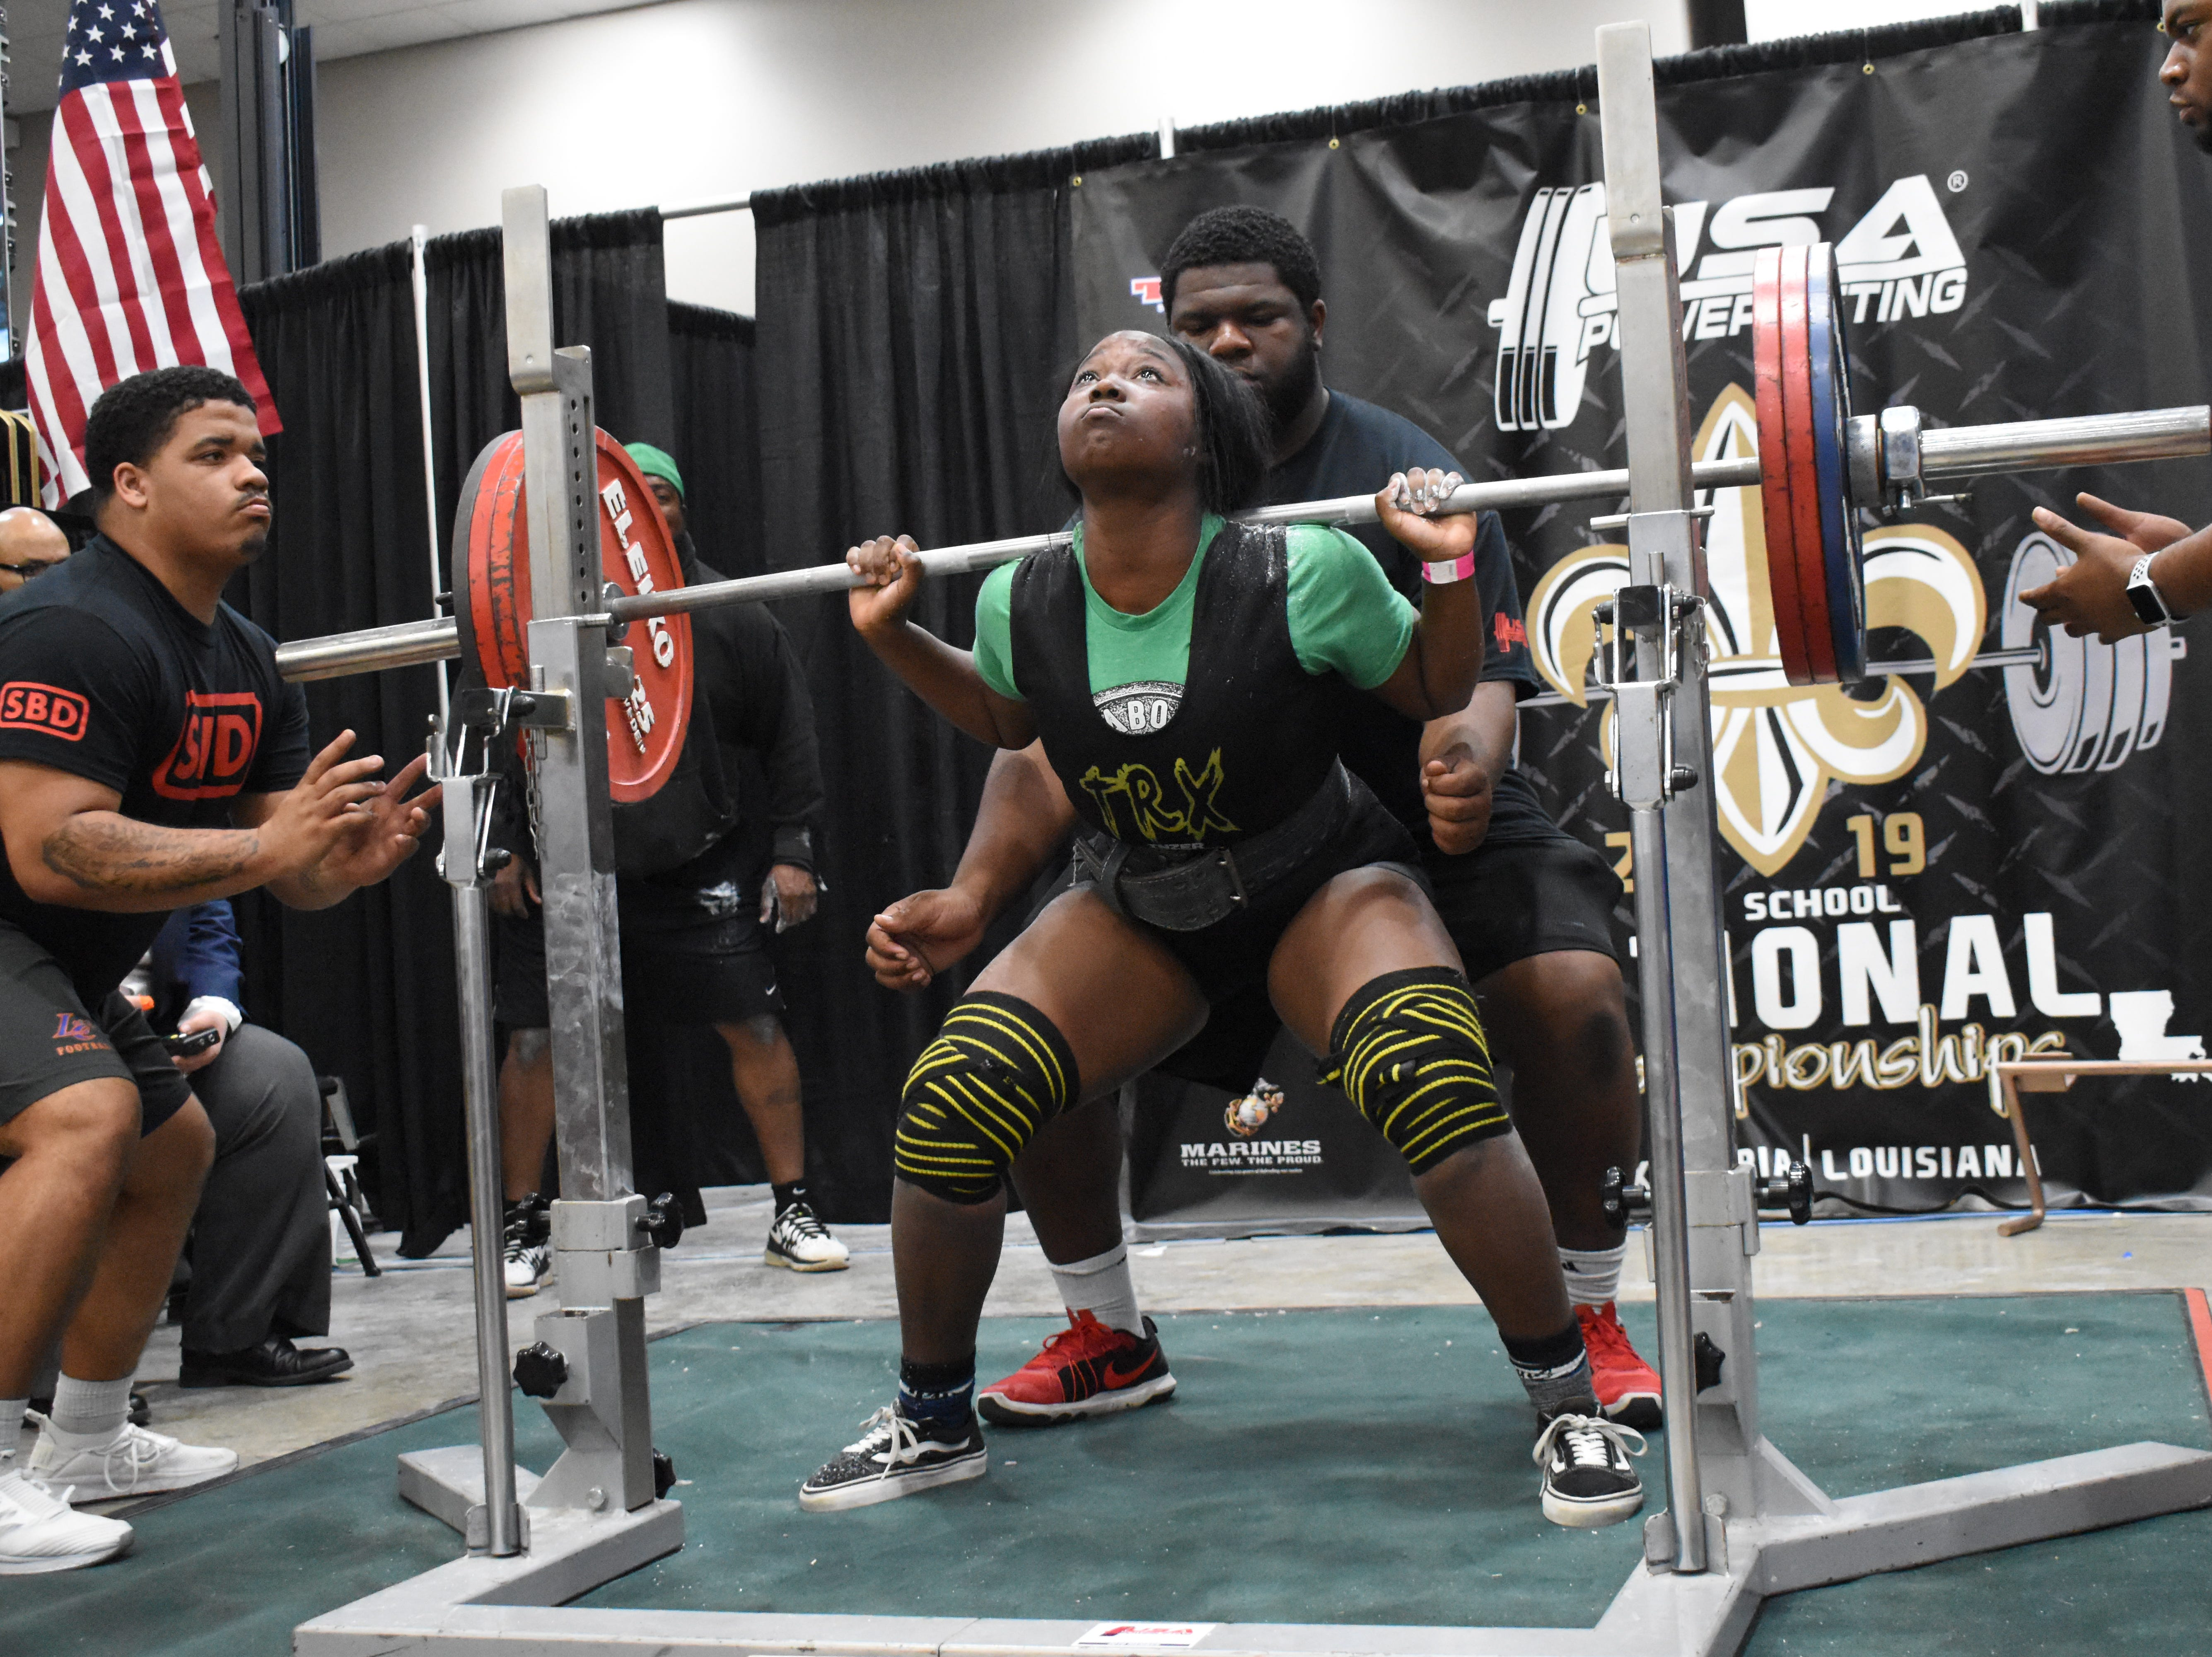 The USA Powerlifting High School National Championships, equipped and raw, are being held at the Randolph Riverfront Center in downtown Alexandria with high school powerlifters from across the country competing in the four-day event. Powerlifters from local schools are also competing. The meet continues Sunday, March 31, 2019.